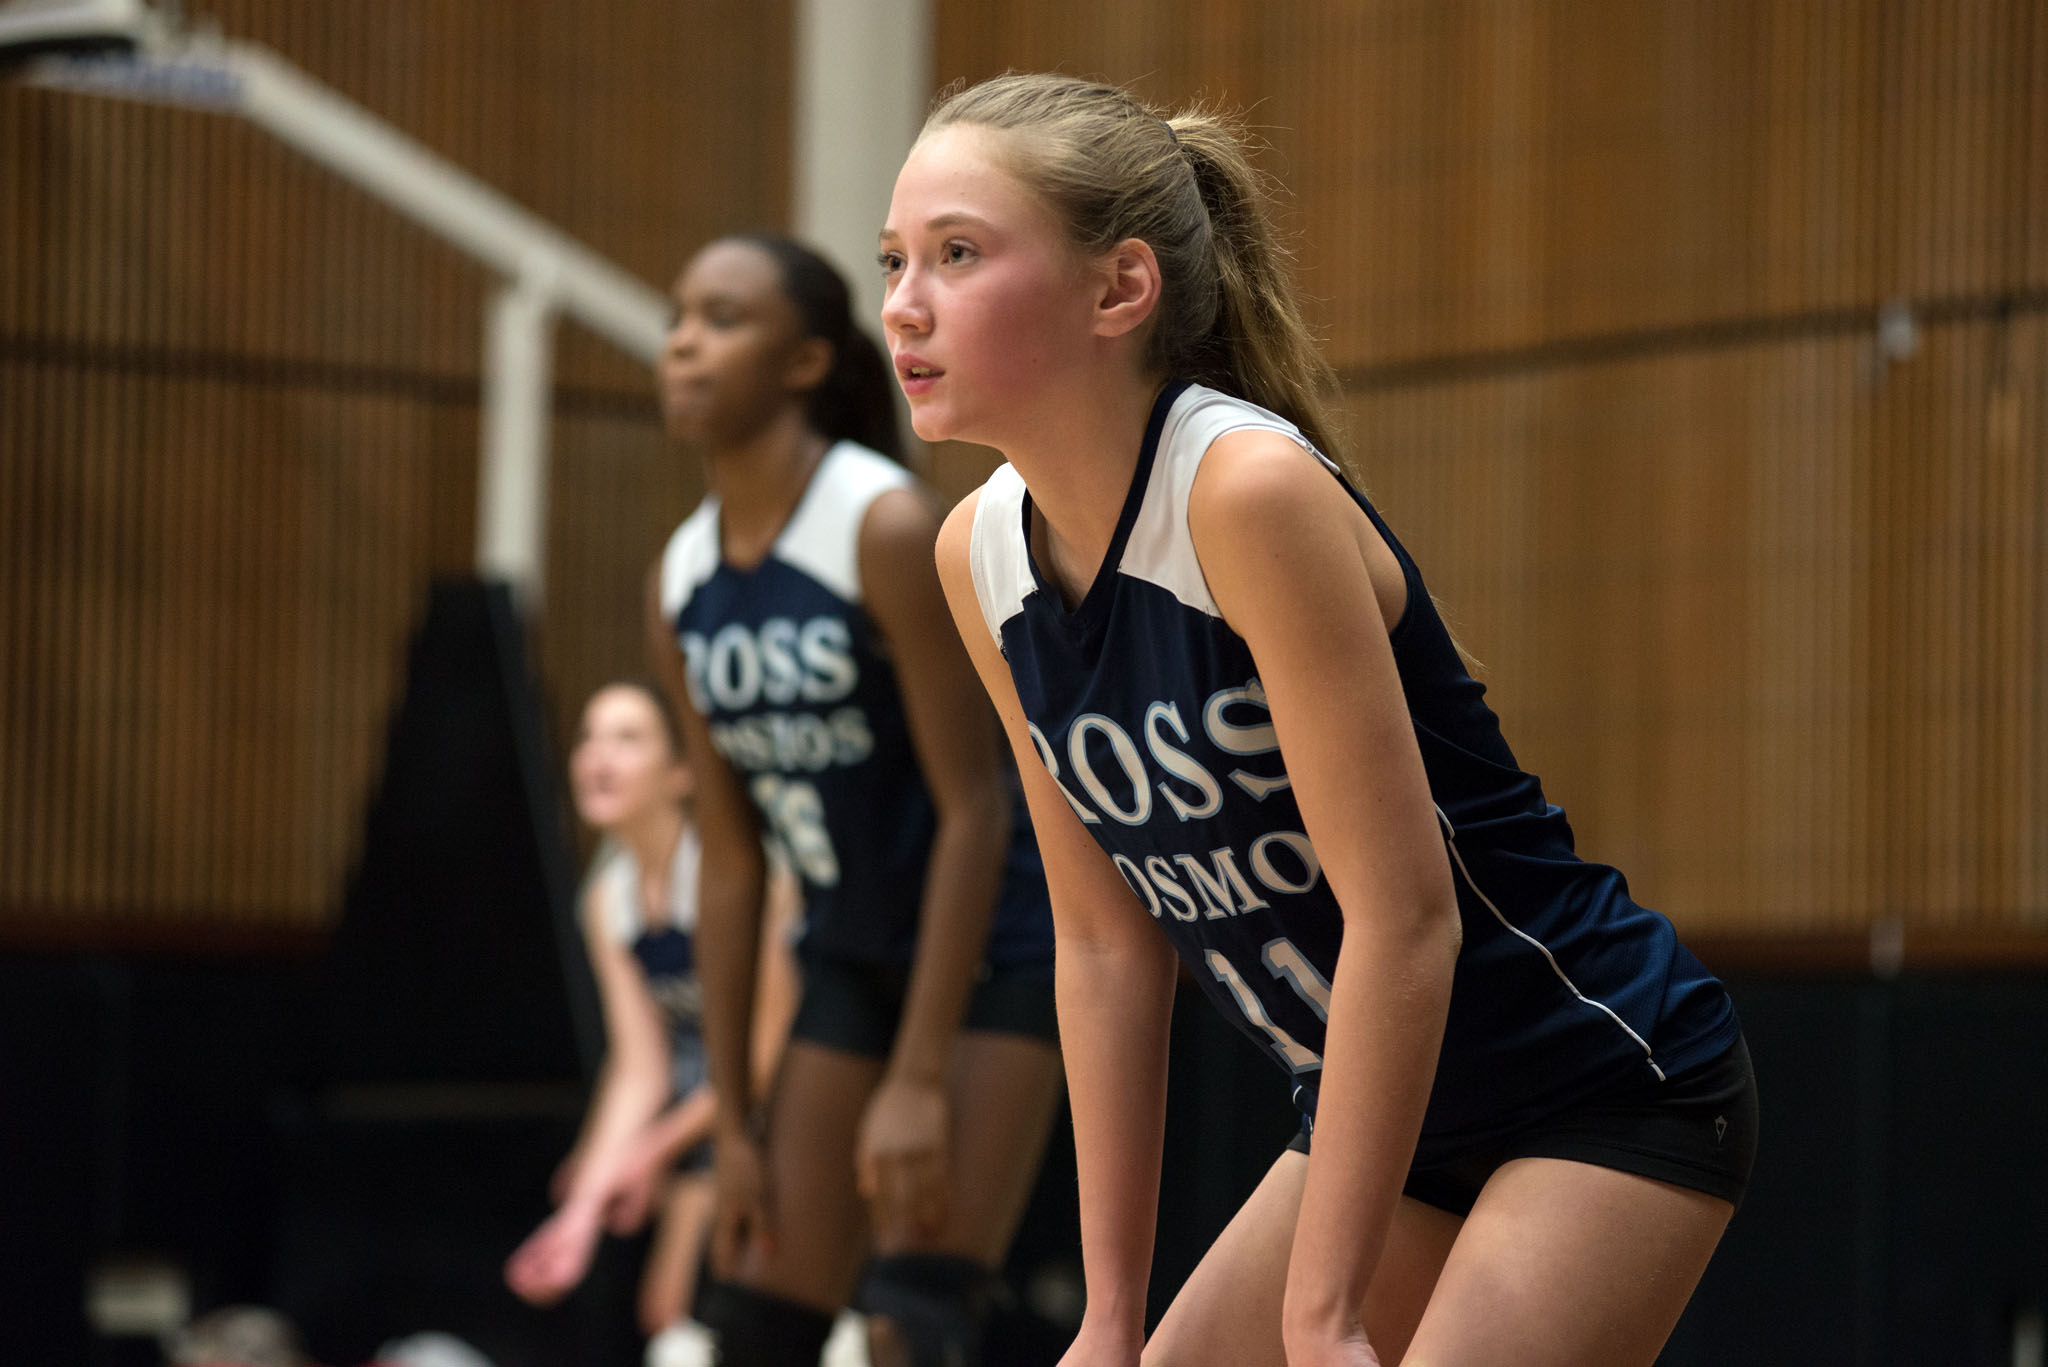 Ross High School Girl's Volleyball team in athletic uniforms, ready to begin play.